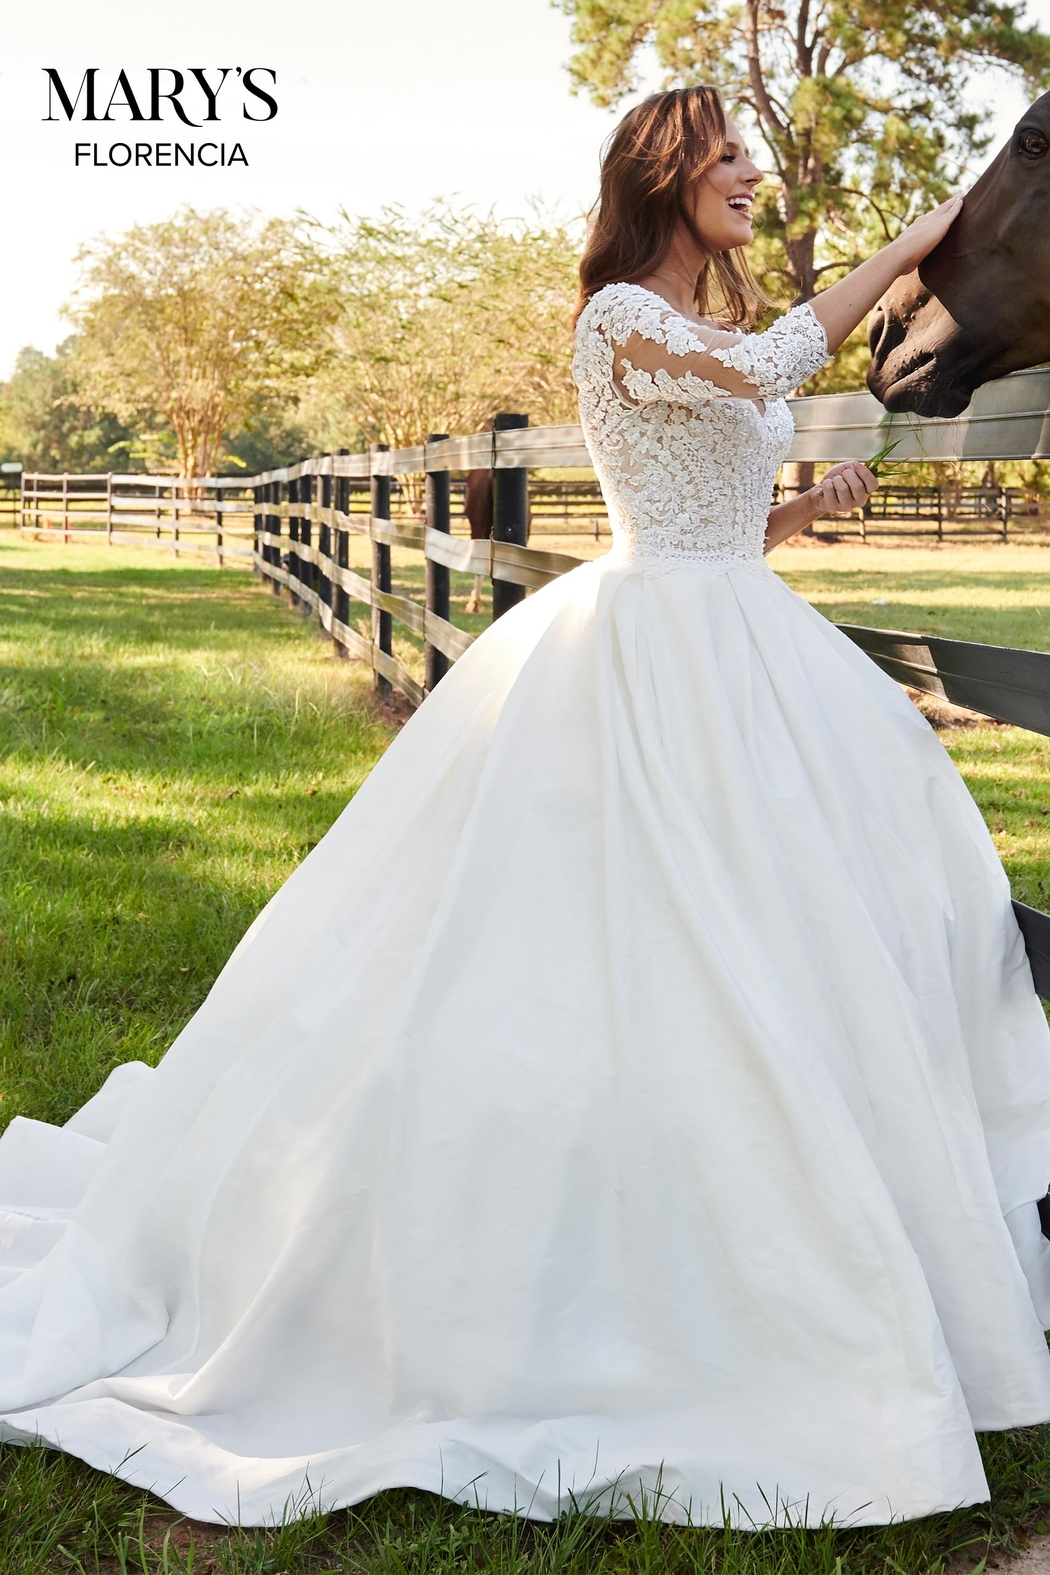 Mary's Bridal Florencia Bridal Gown in Ivory Color - Back Cropped Image